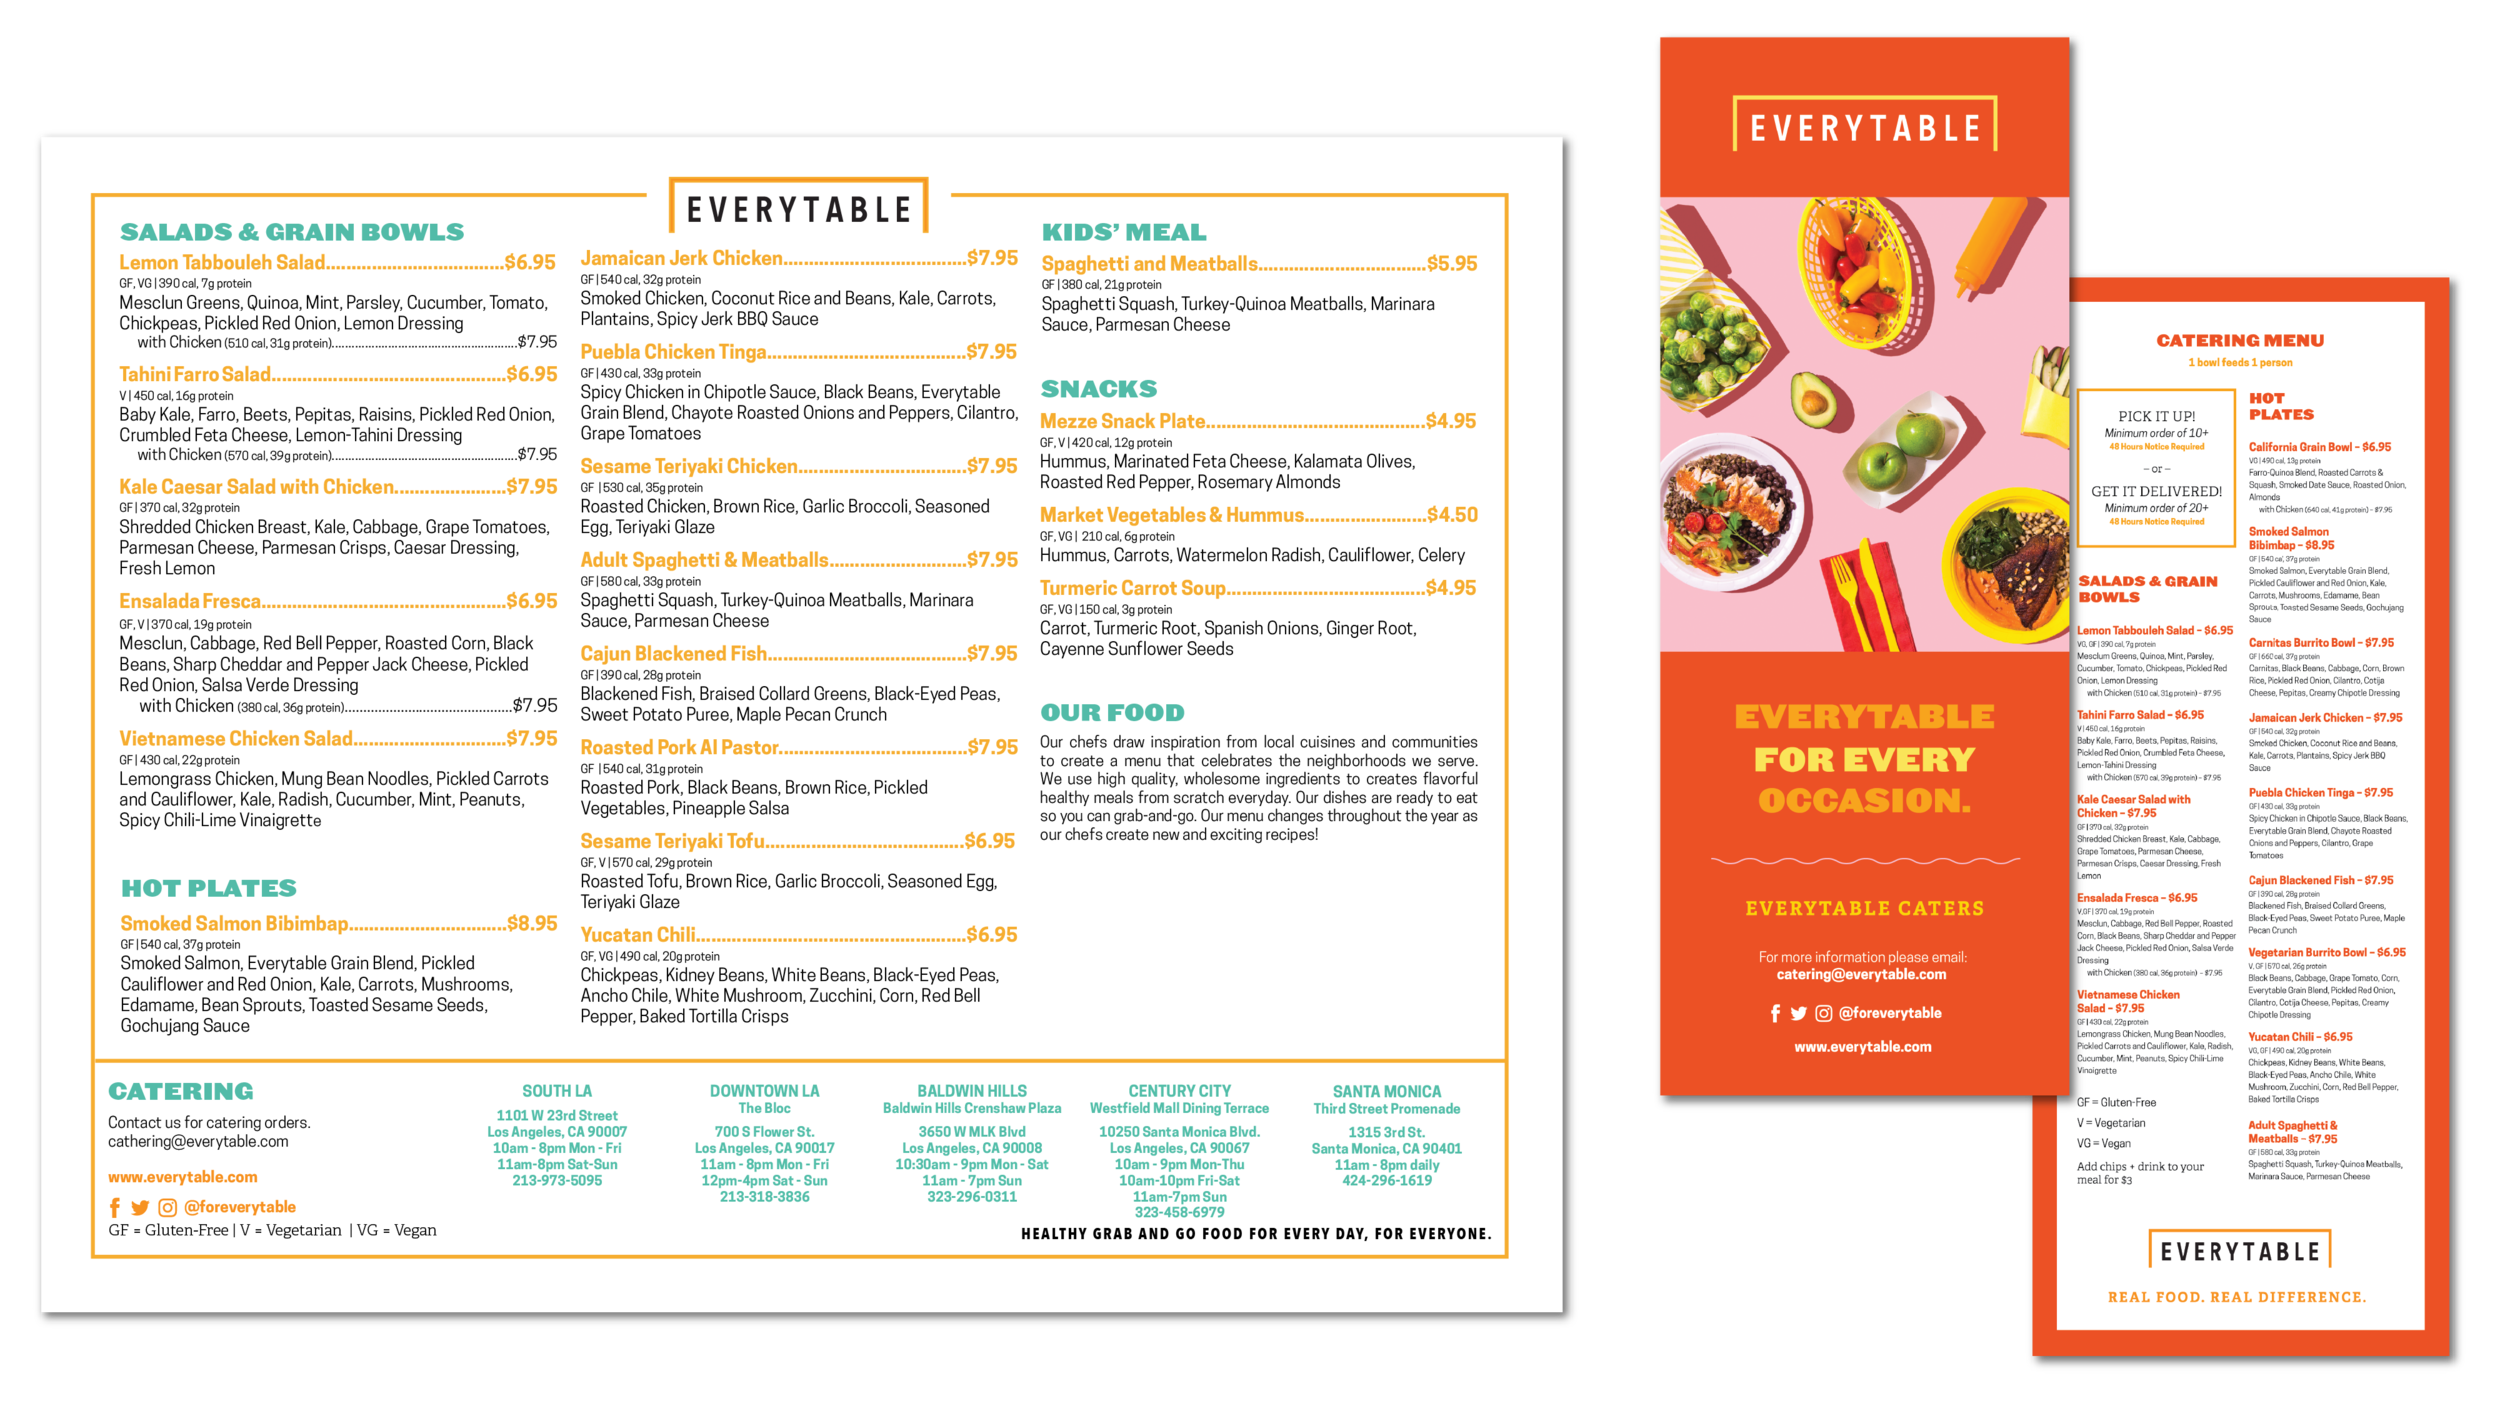 L&CO19-Proejcts-Everytanble-Menus-01.png